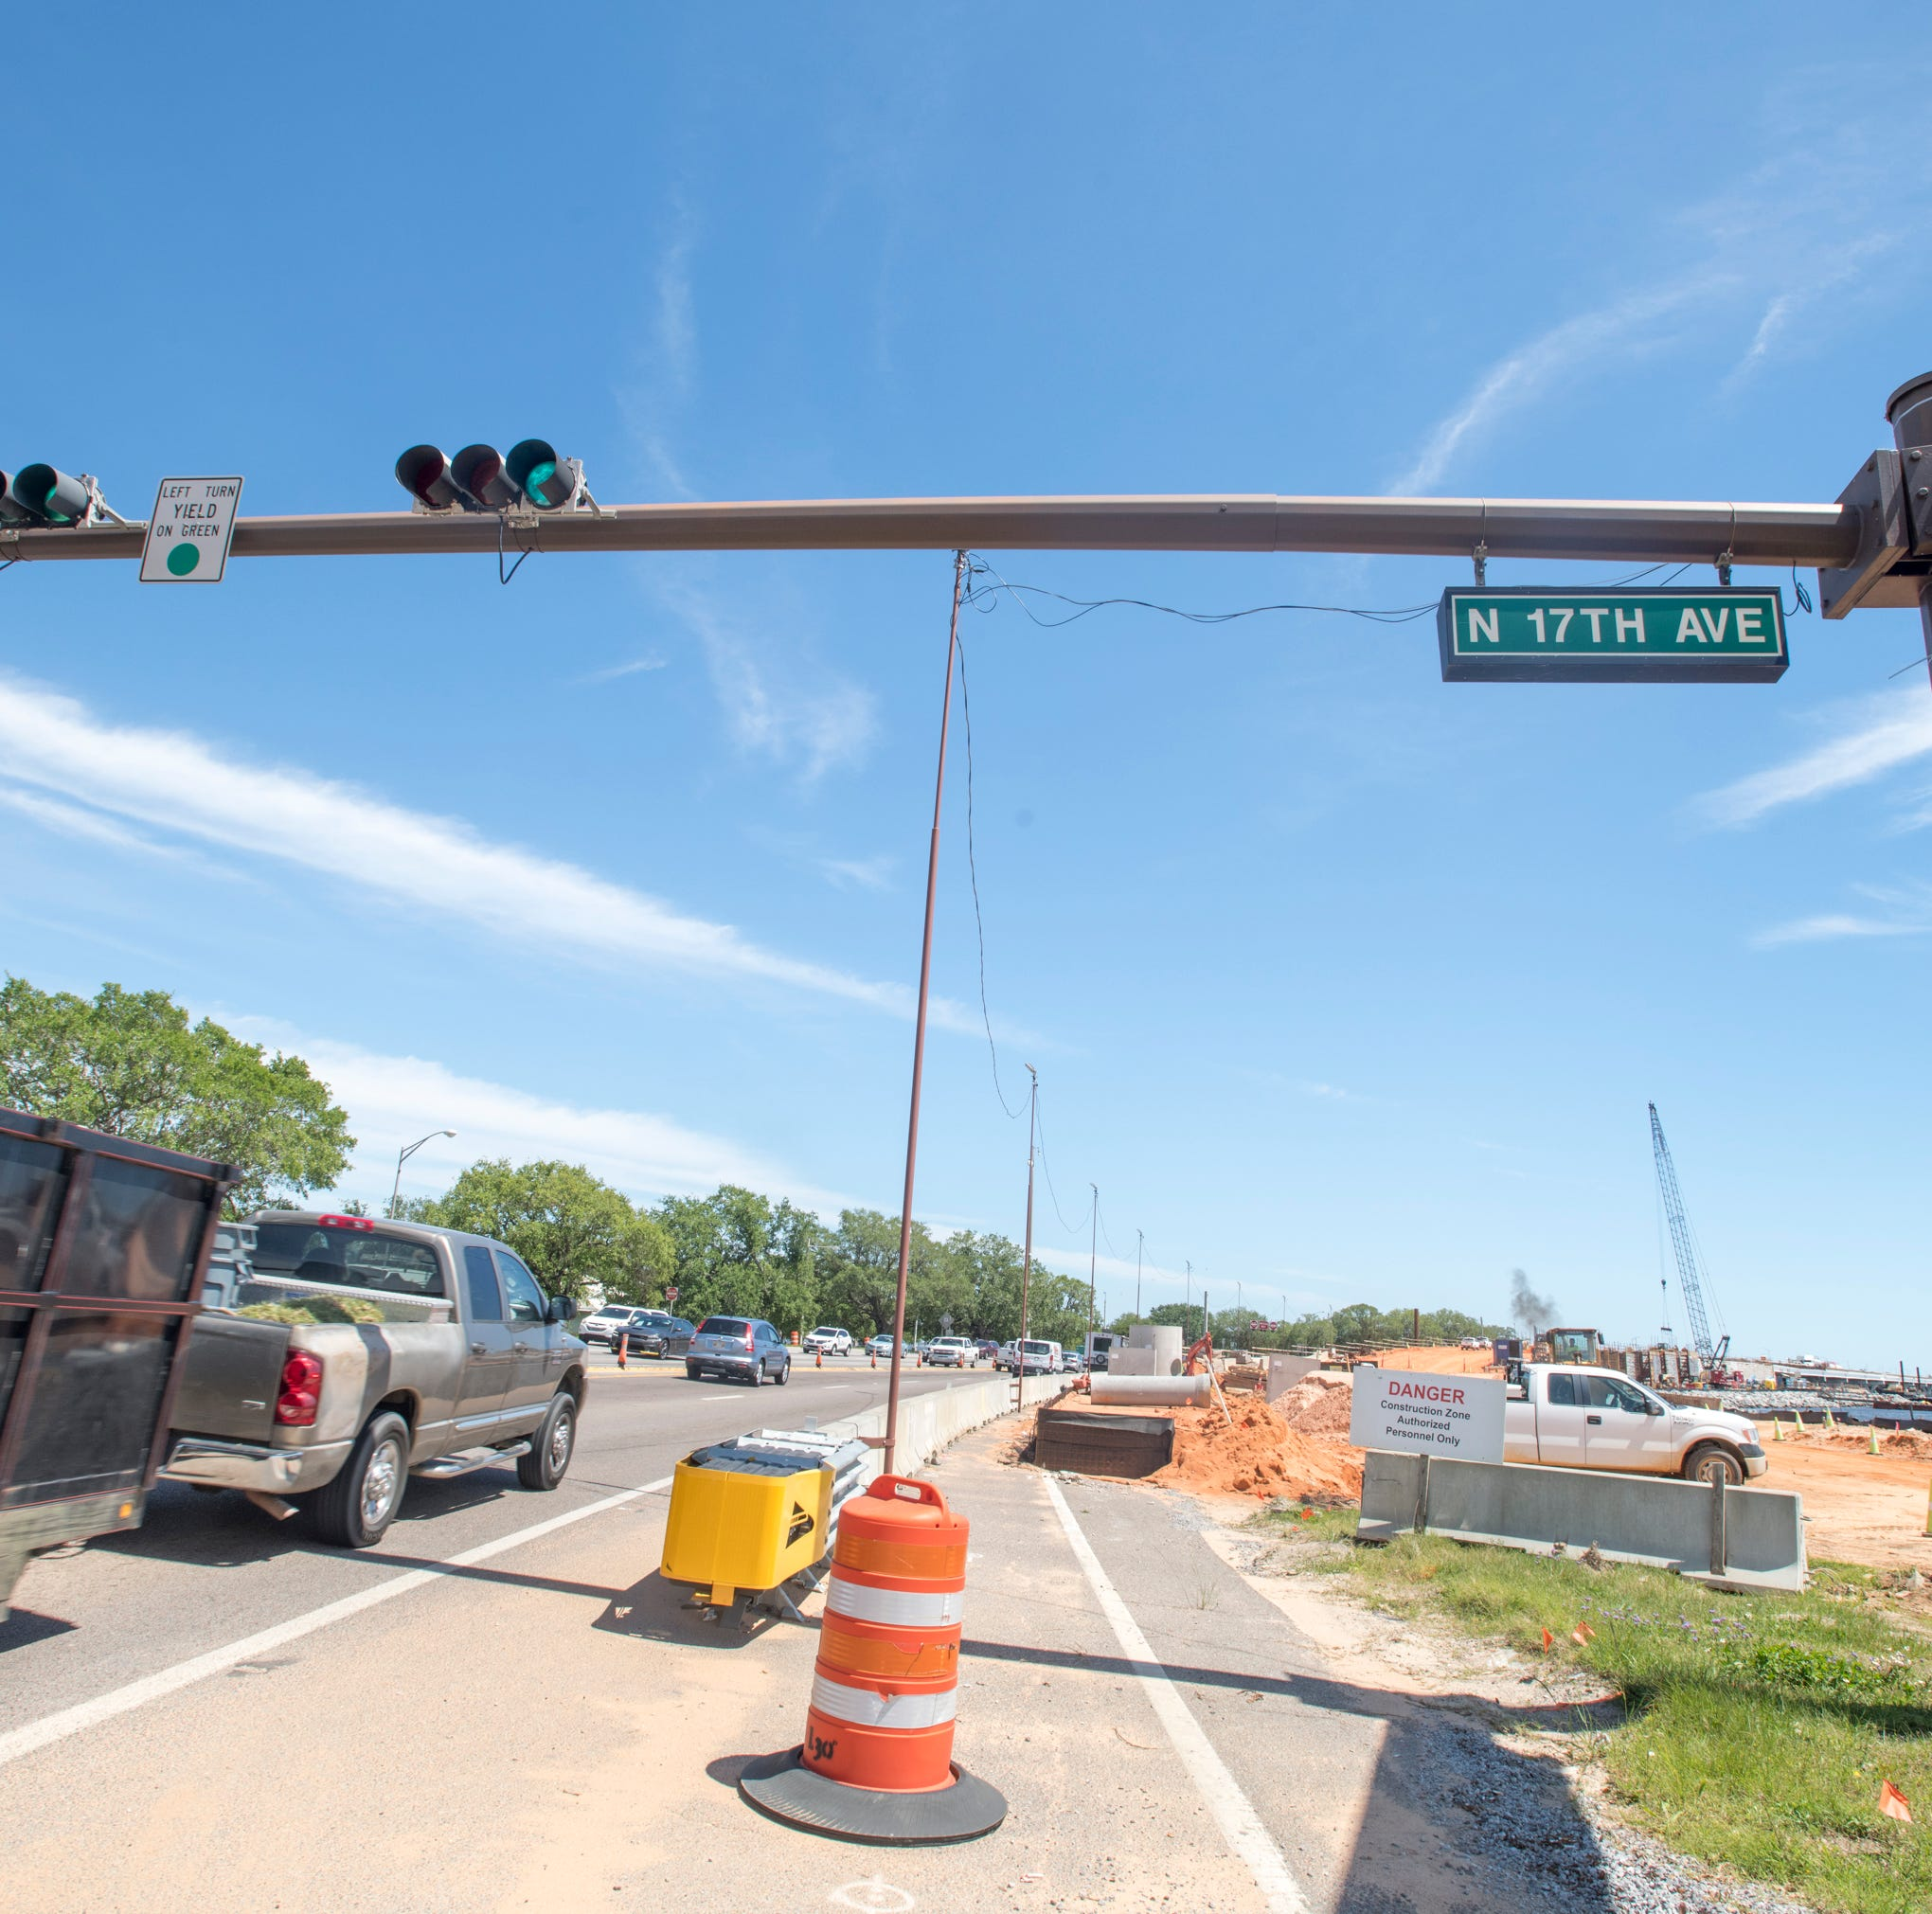 Pensacola roundabout, flyover project to include truck traffic ban under Graffiti Bridge